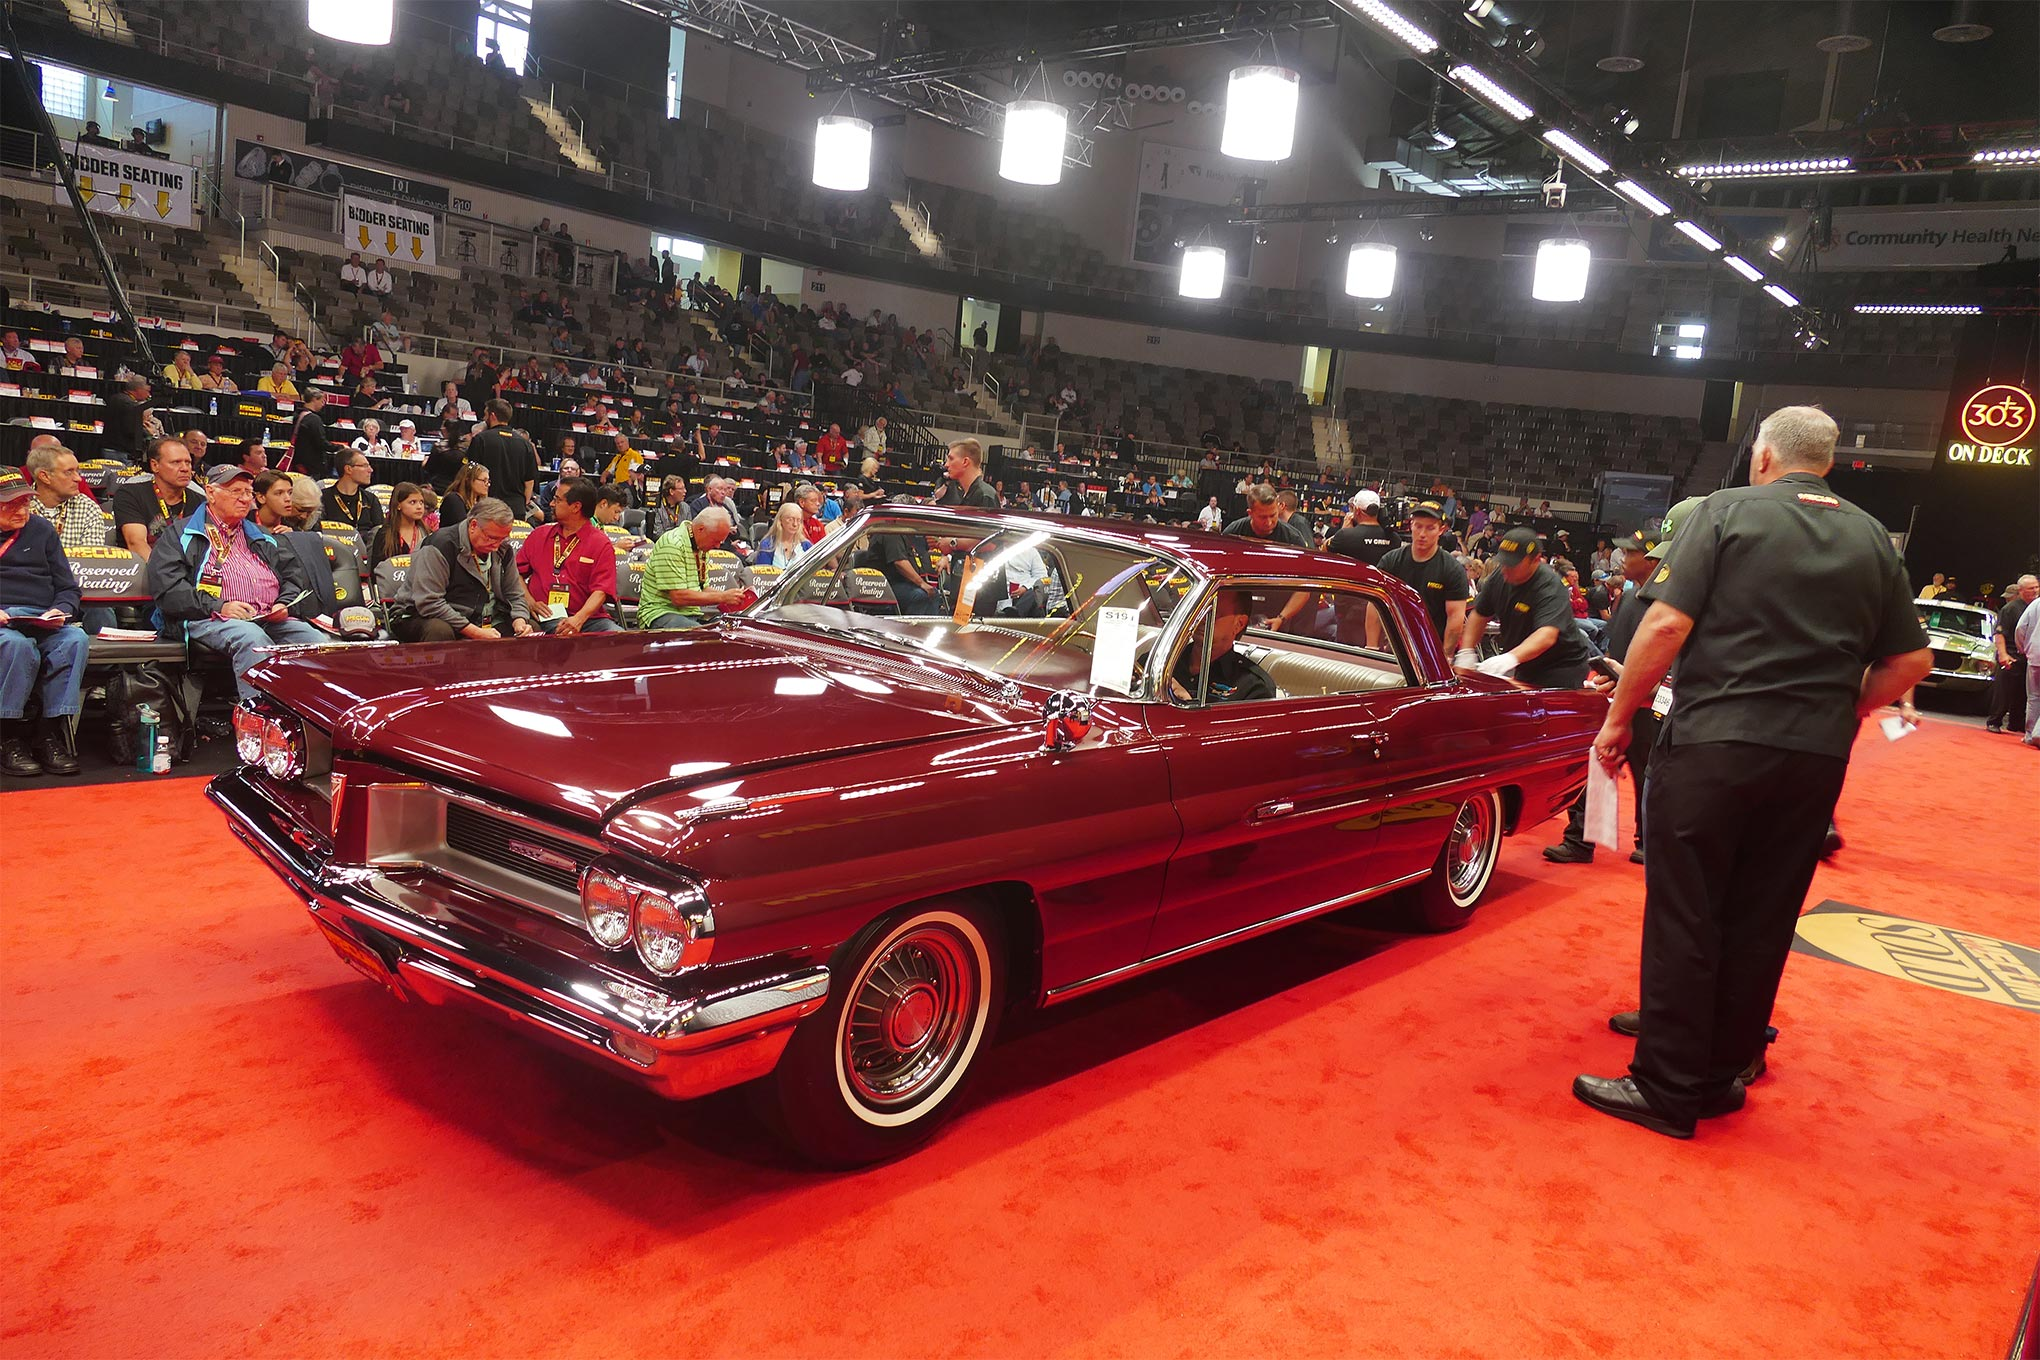 Pontiac fans got an eyeful with this special Super Duty Grand Prix from 1962, but even $325,000 was not enough to take it home.